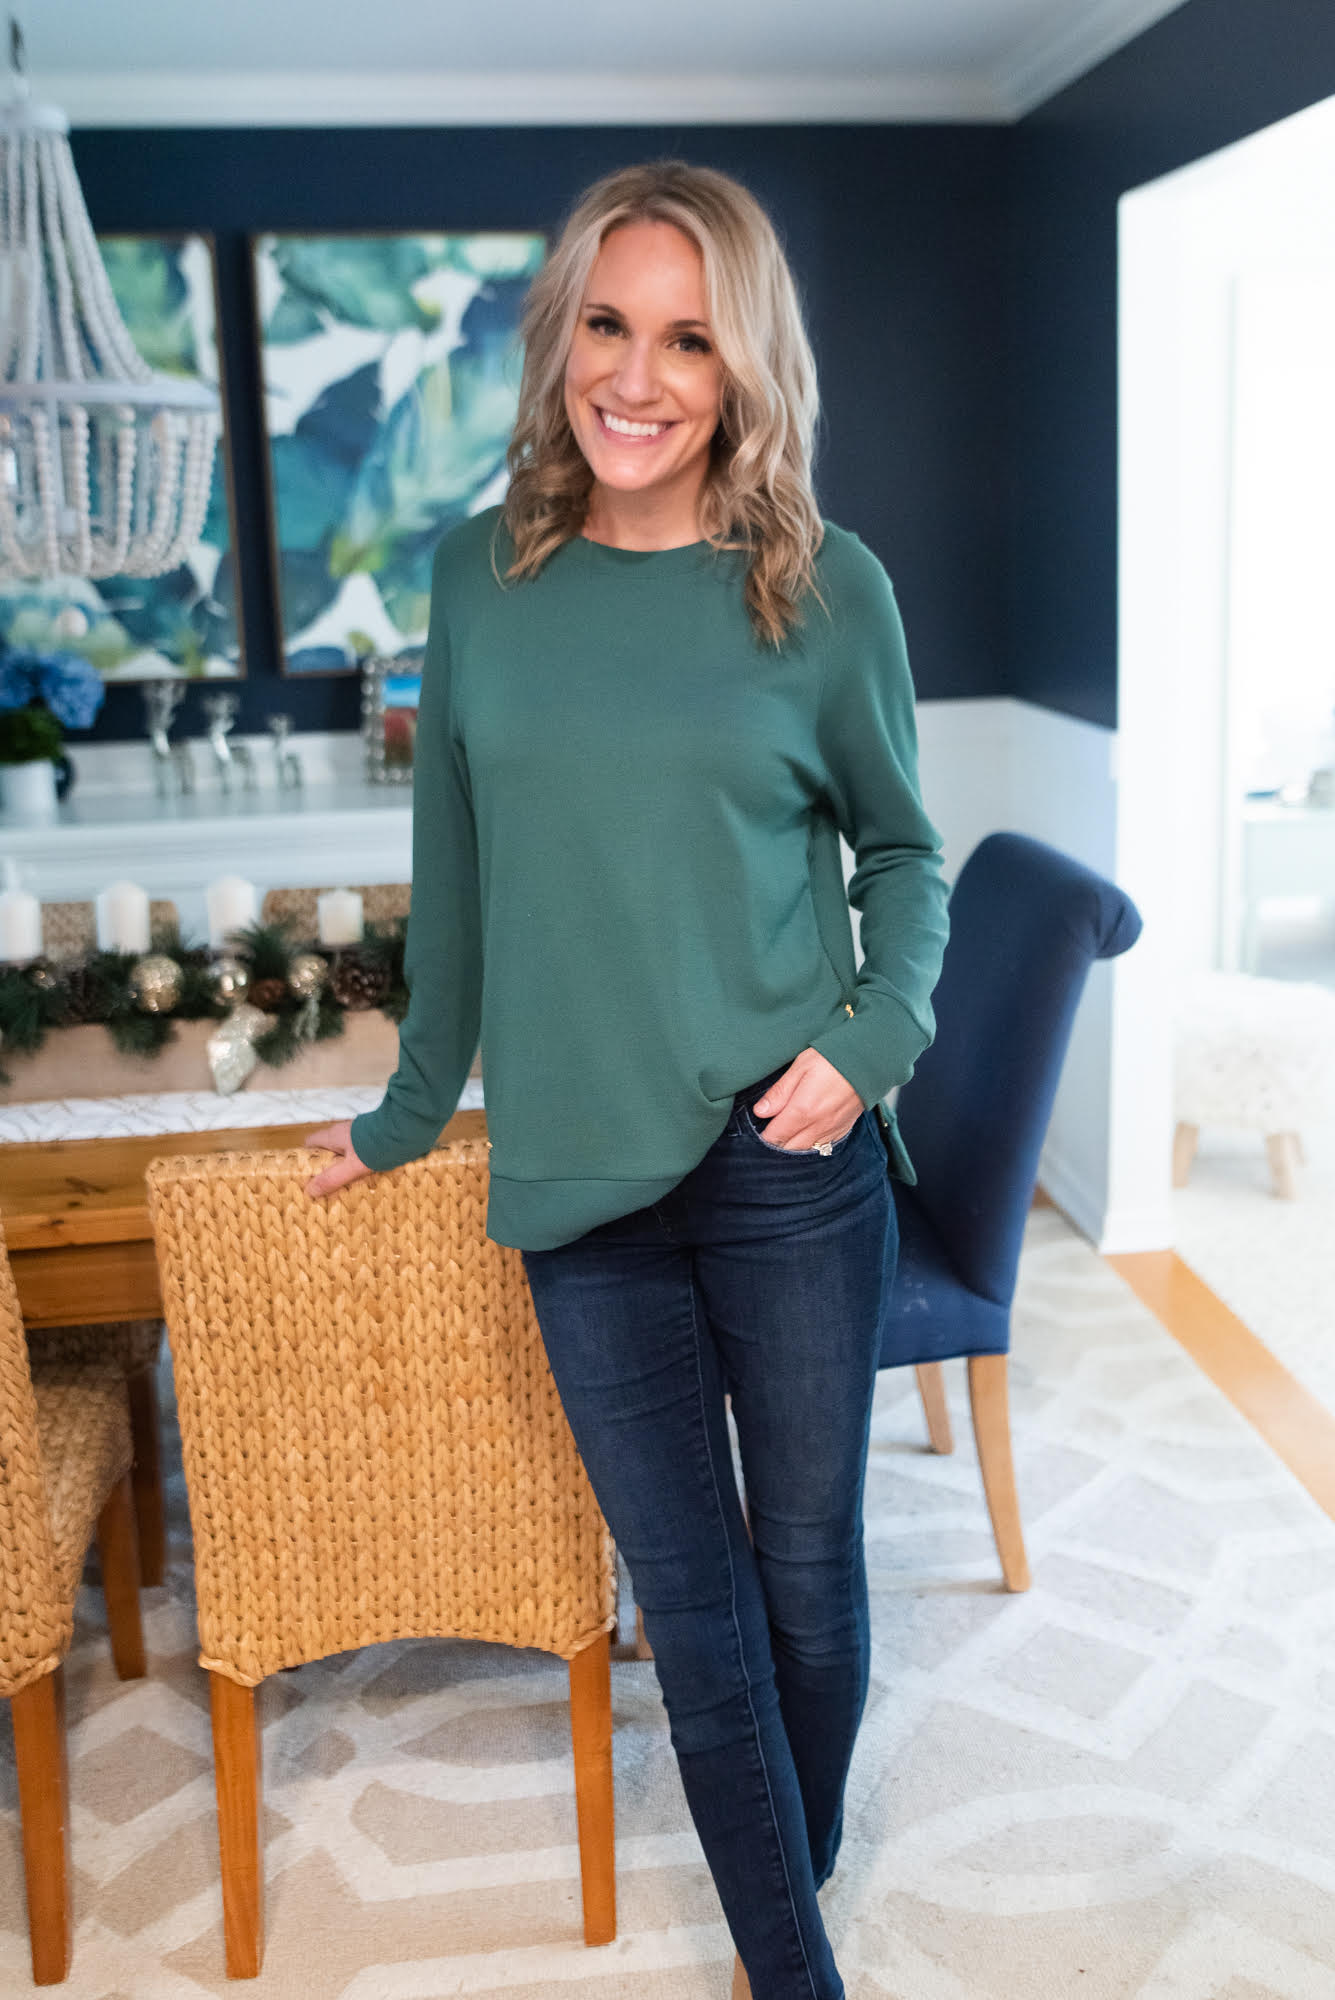 fashionable preppy mom |Fall Clothing by popular Michigan fashion blog, The House of Navy: image of a woman wearing the Duffield Lane Meghan Pullover with a pair of dark wash jeans.